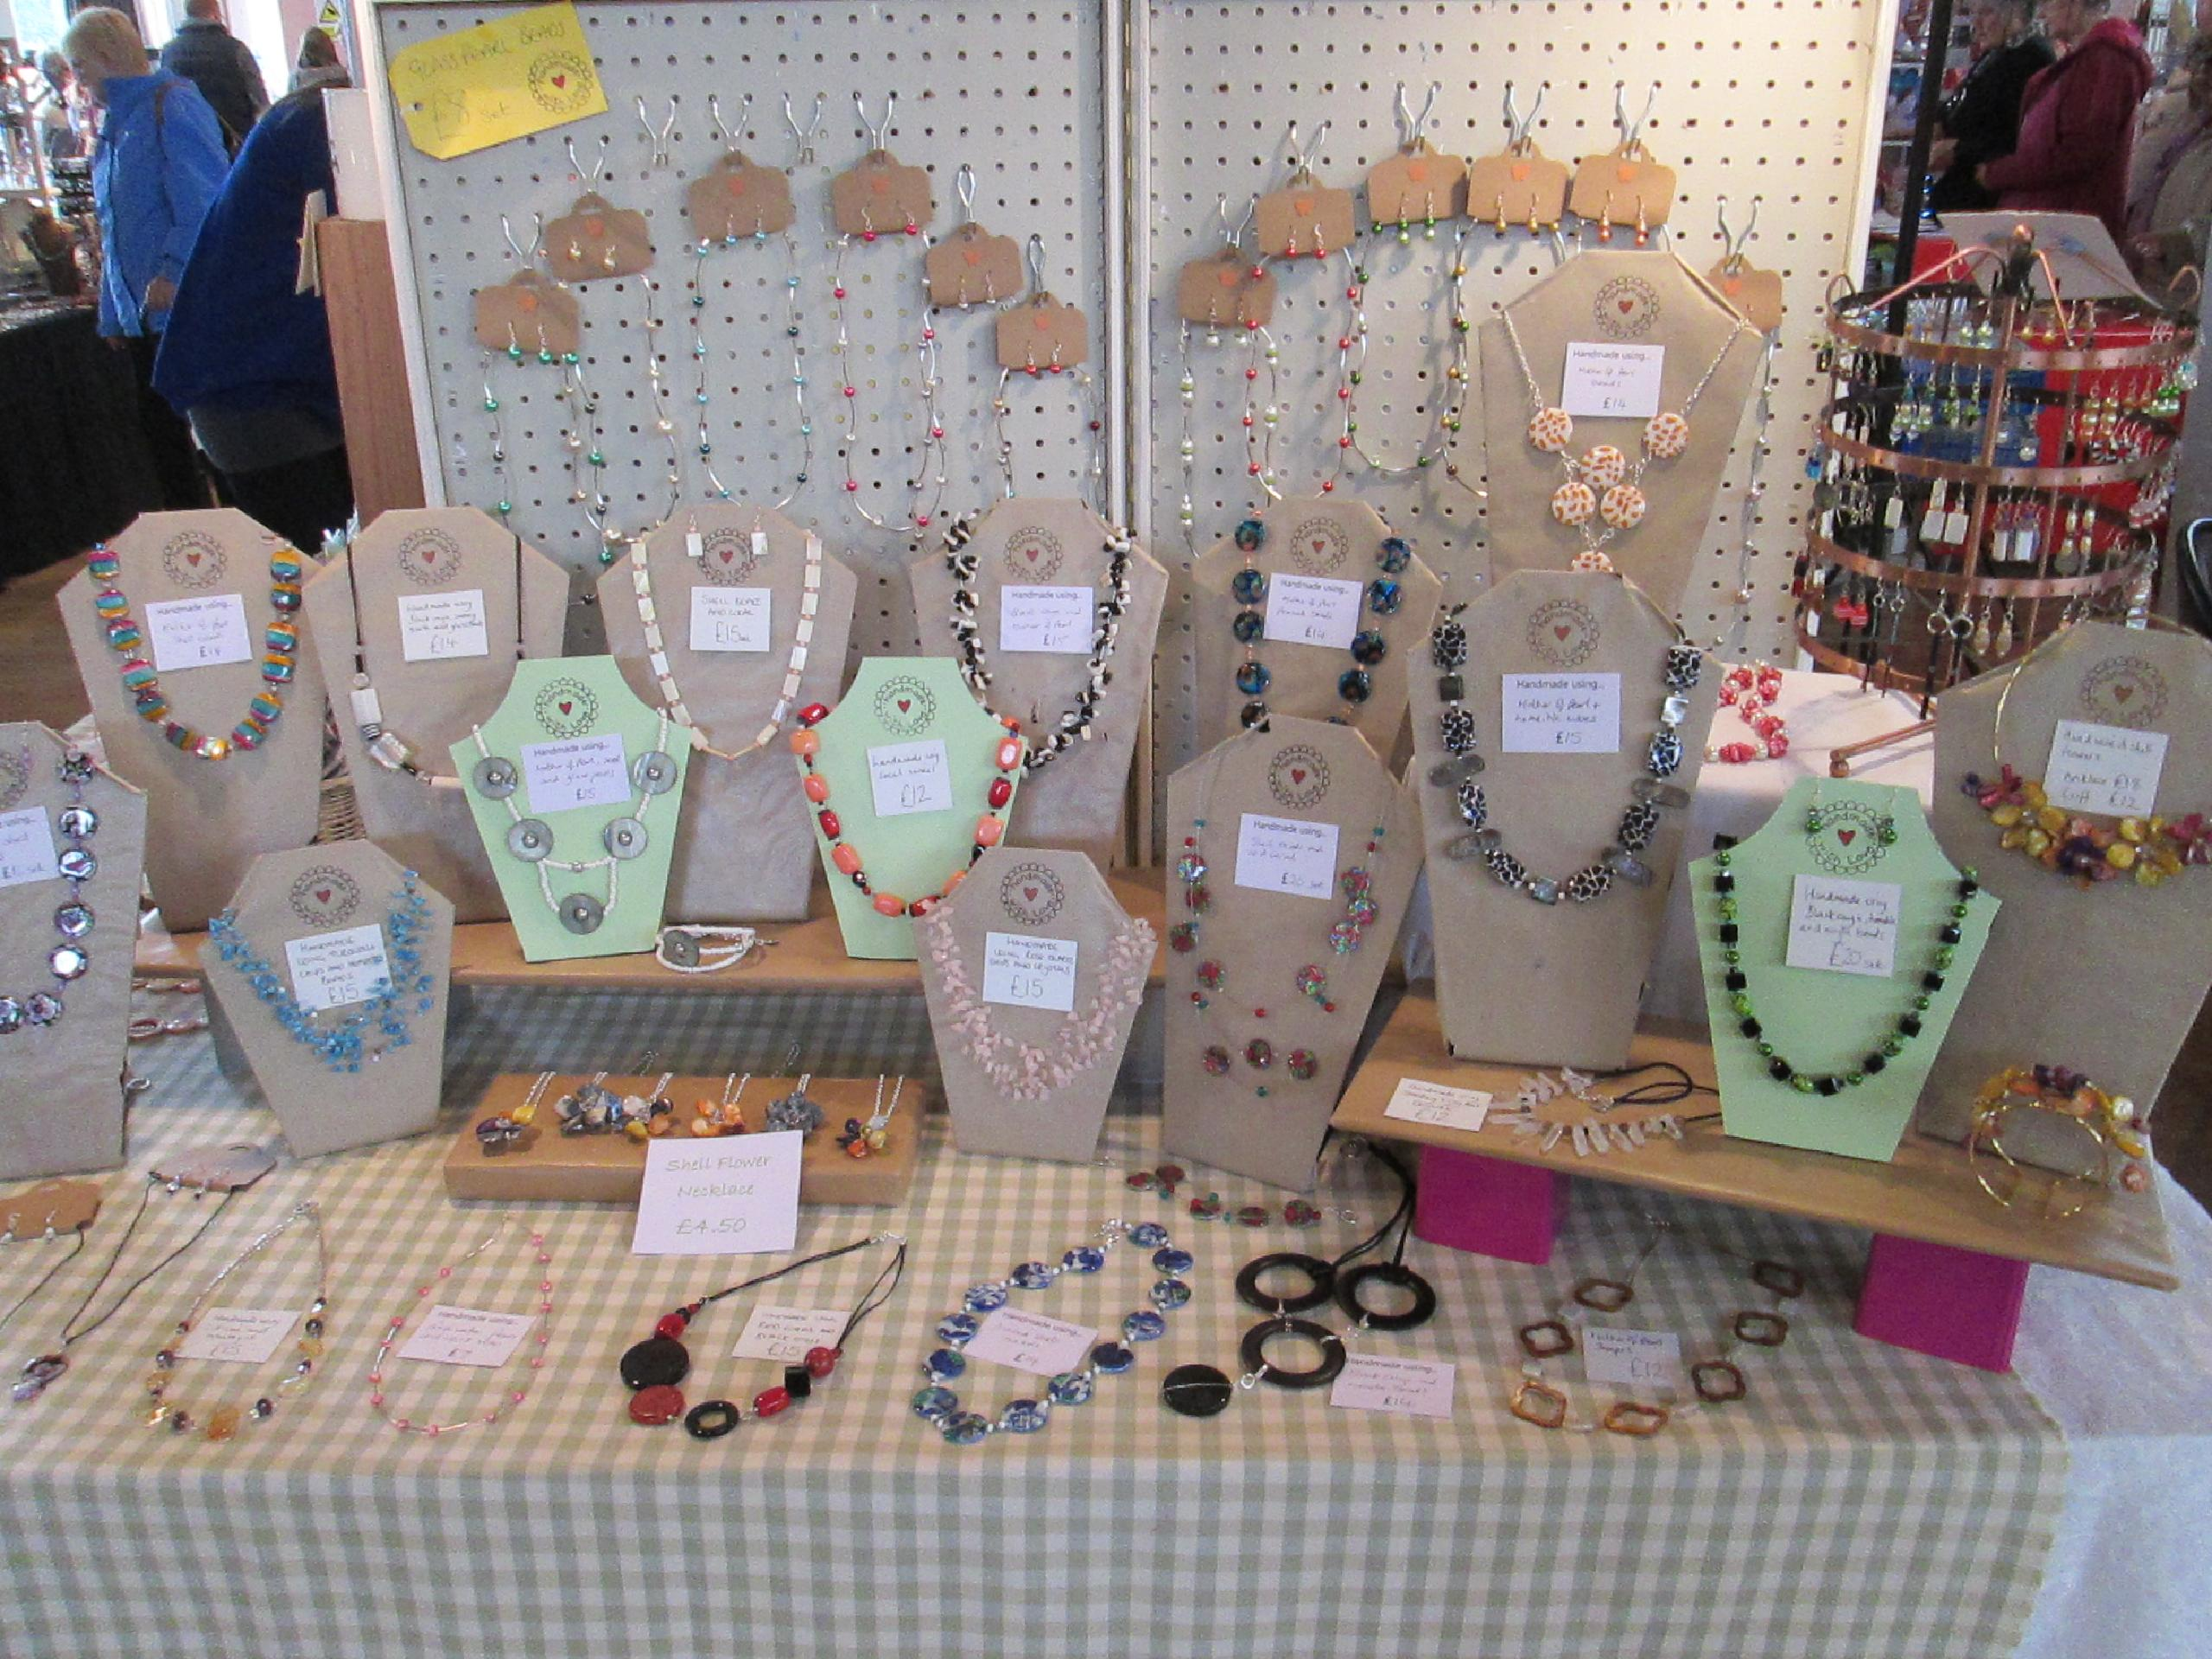 Indoor Stall 5 Jewellery